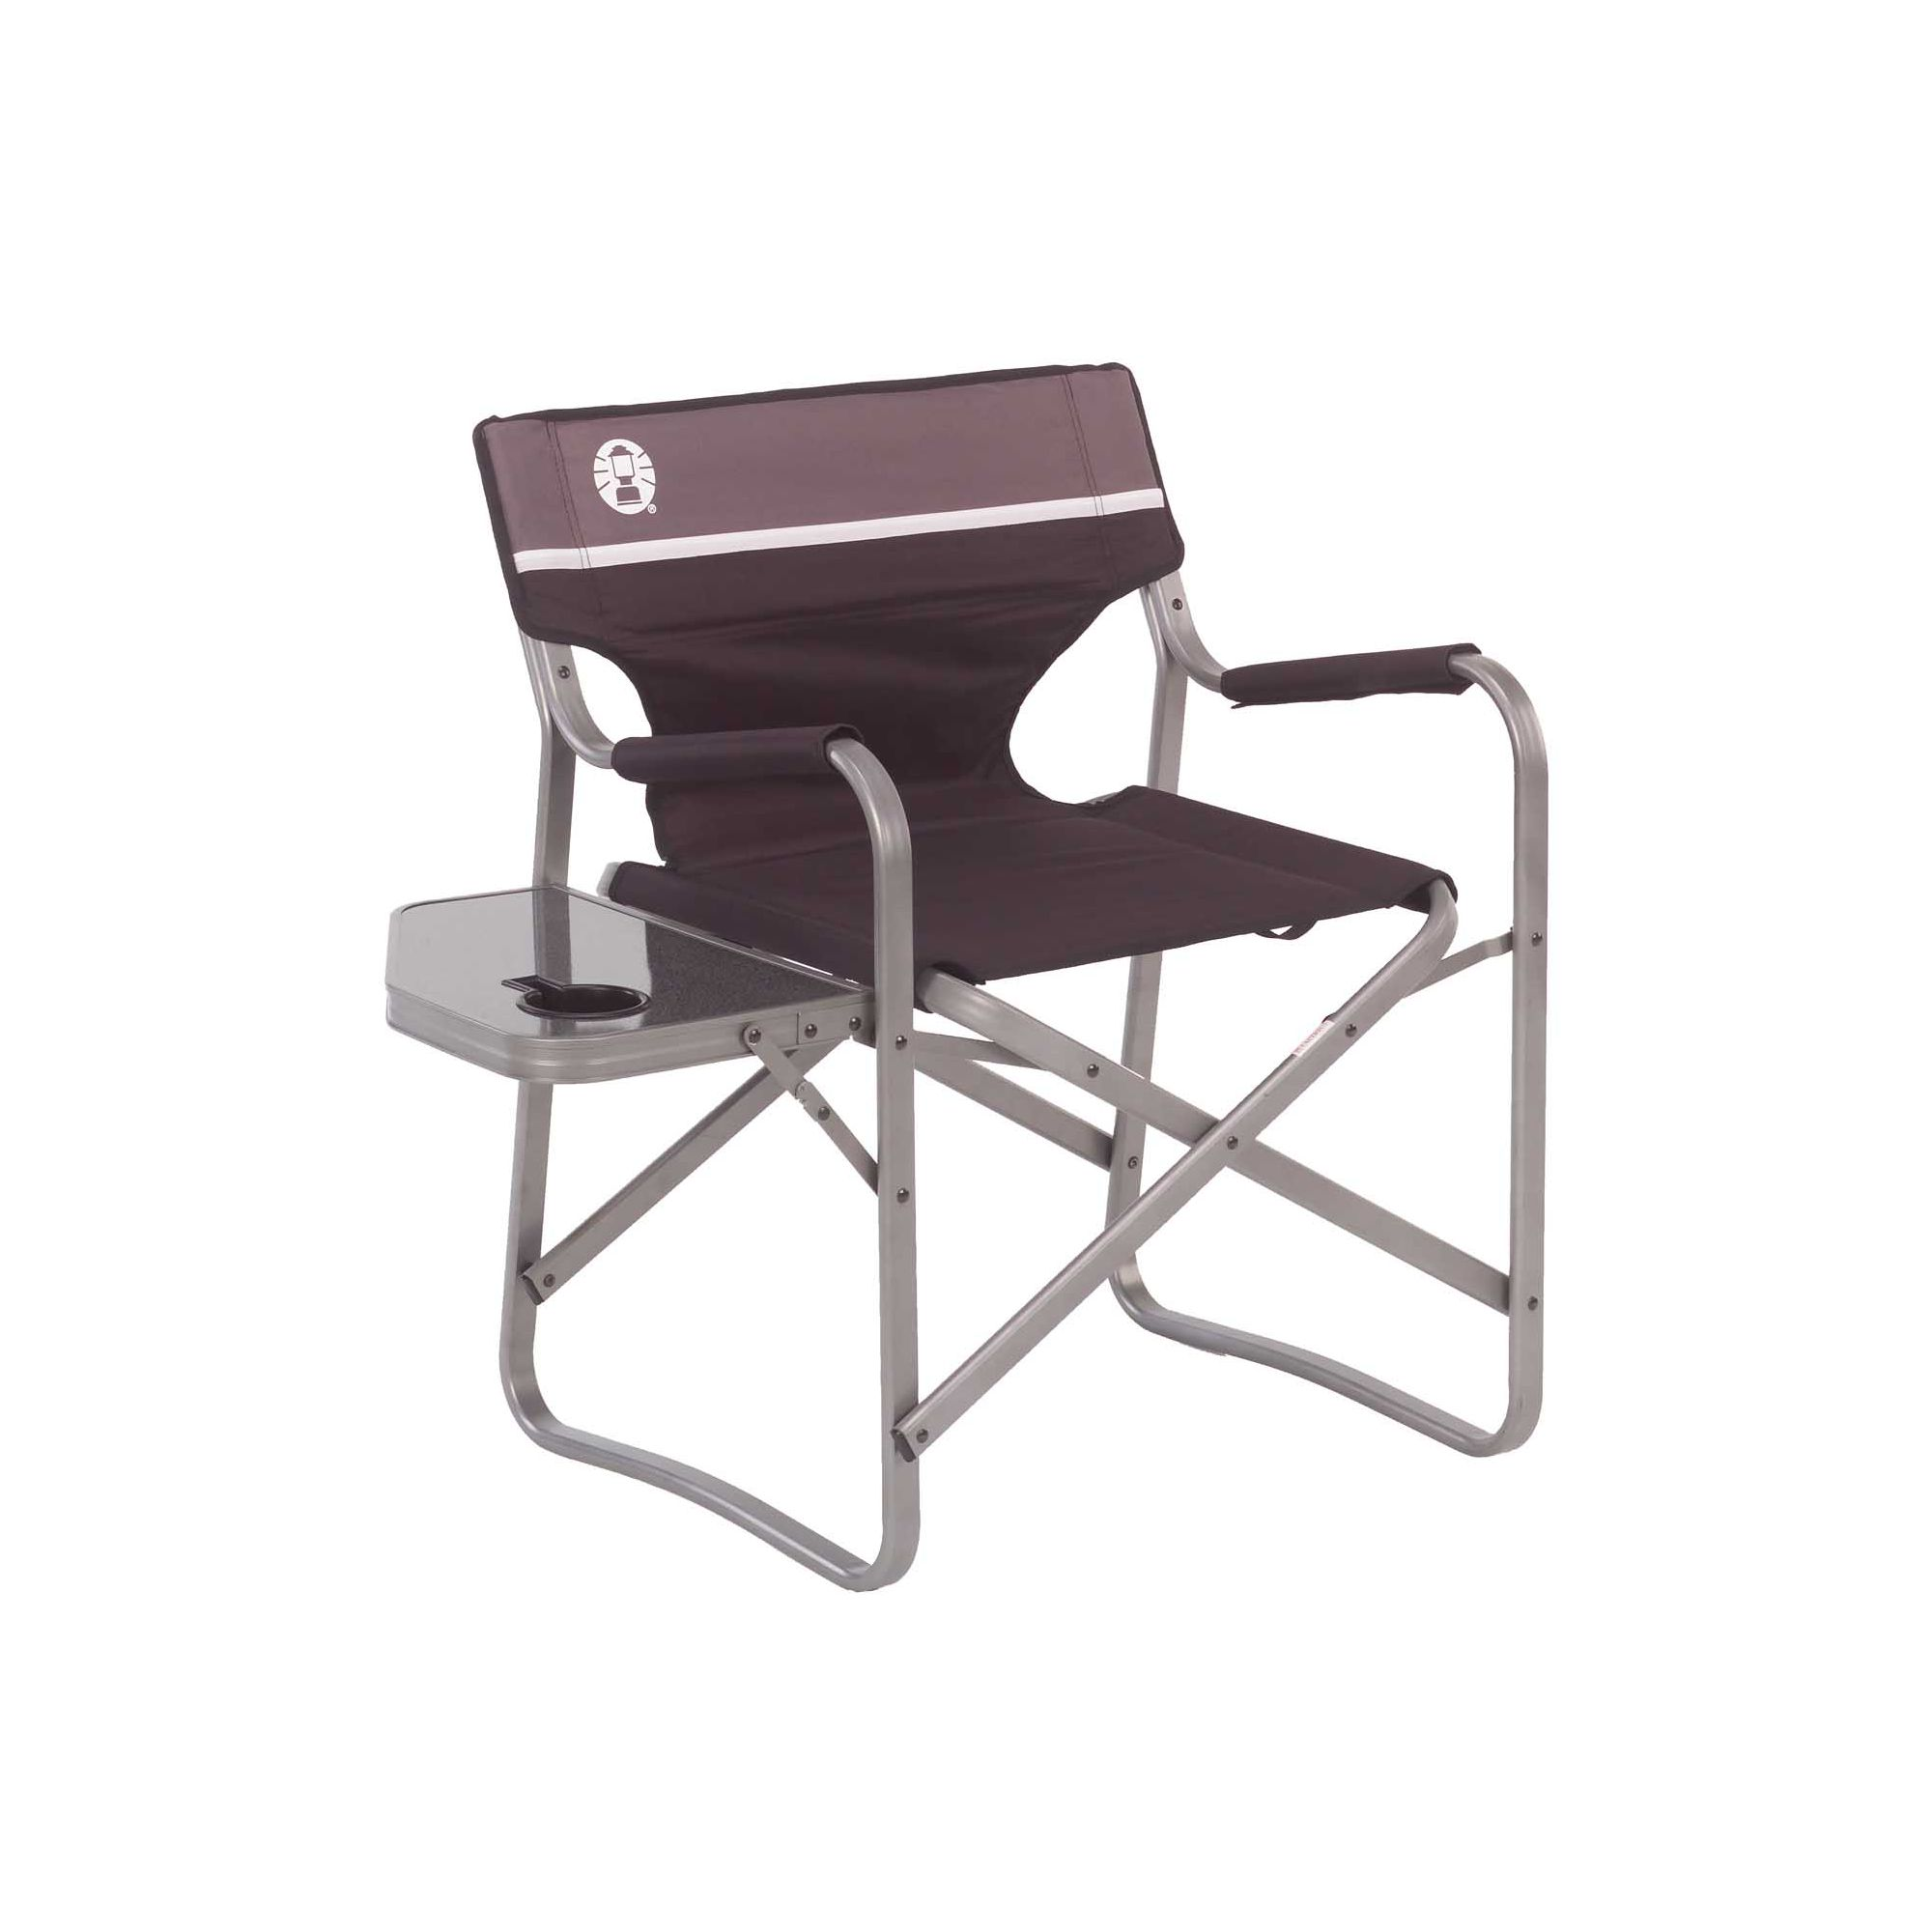 Coleman camp chairs - Aluminum Deck Chair